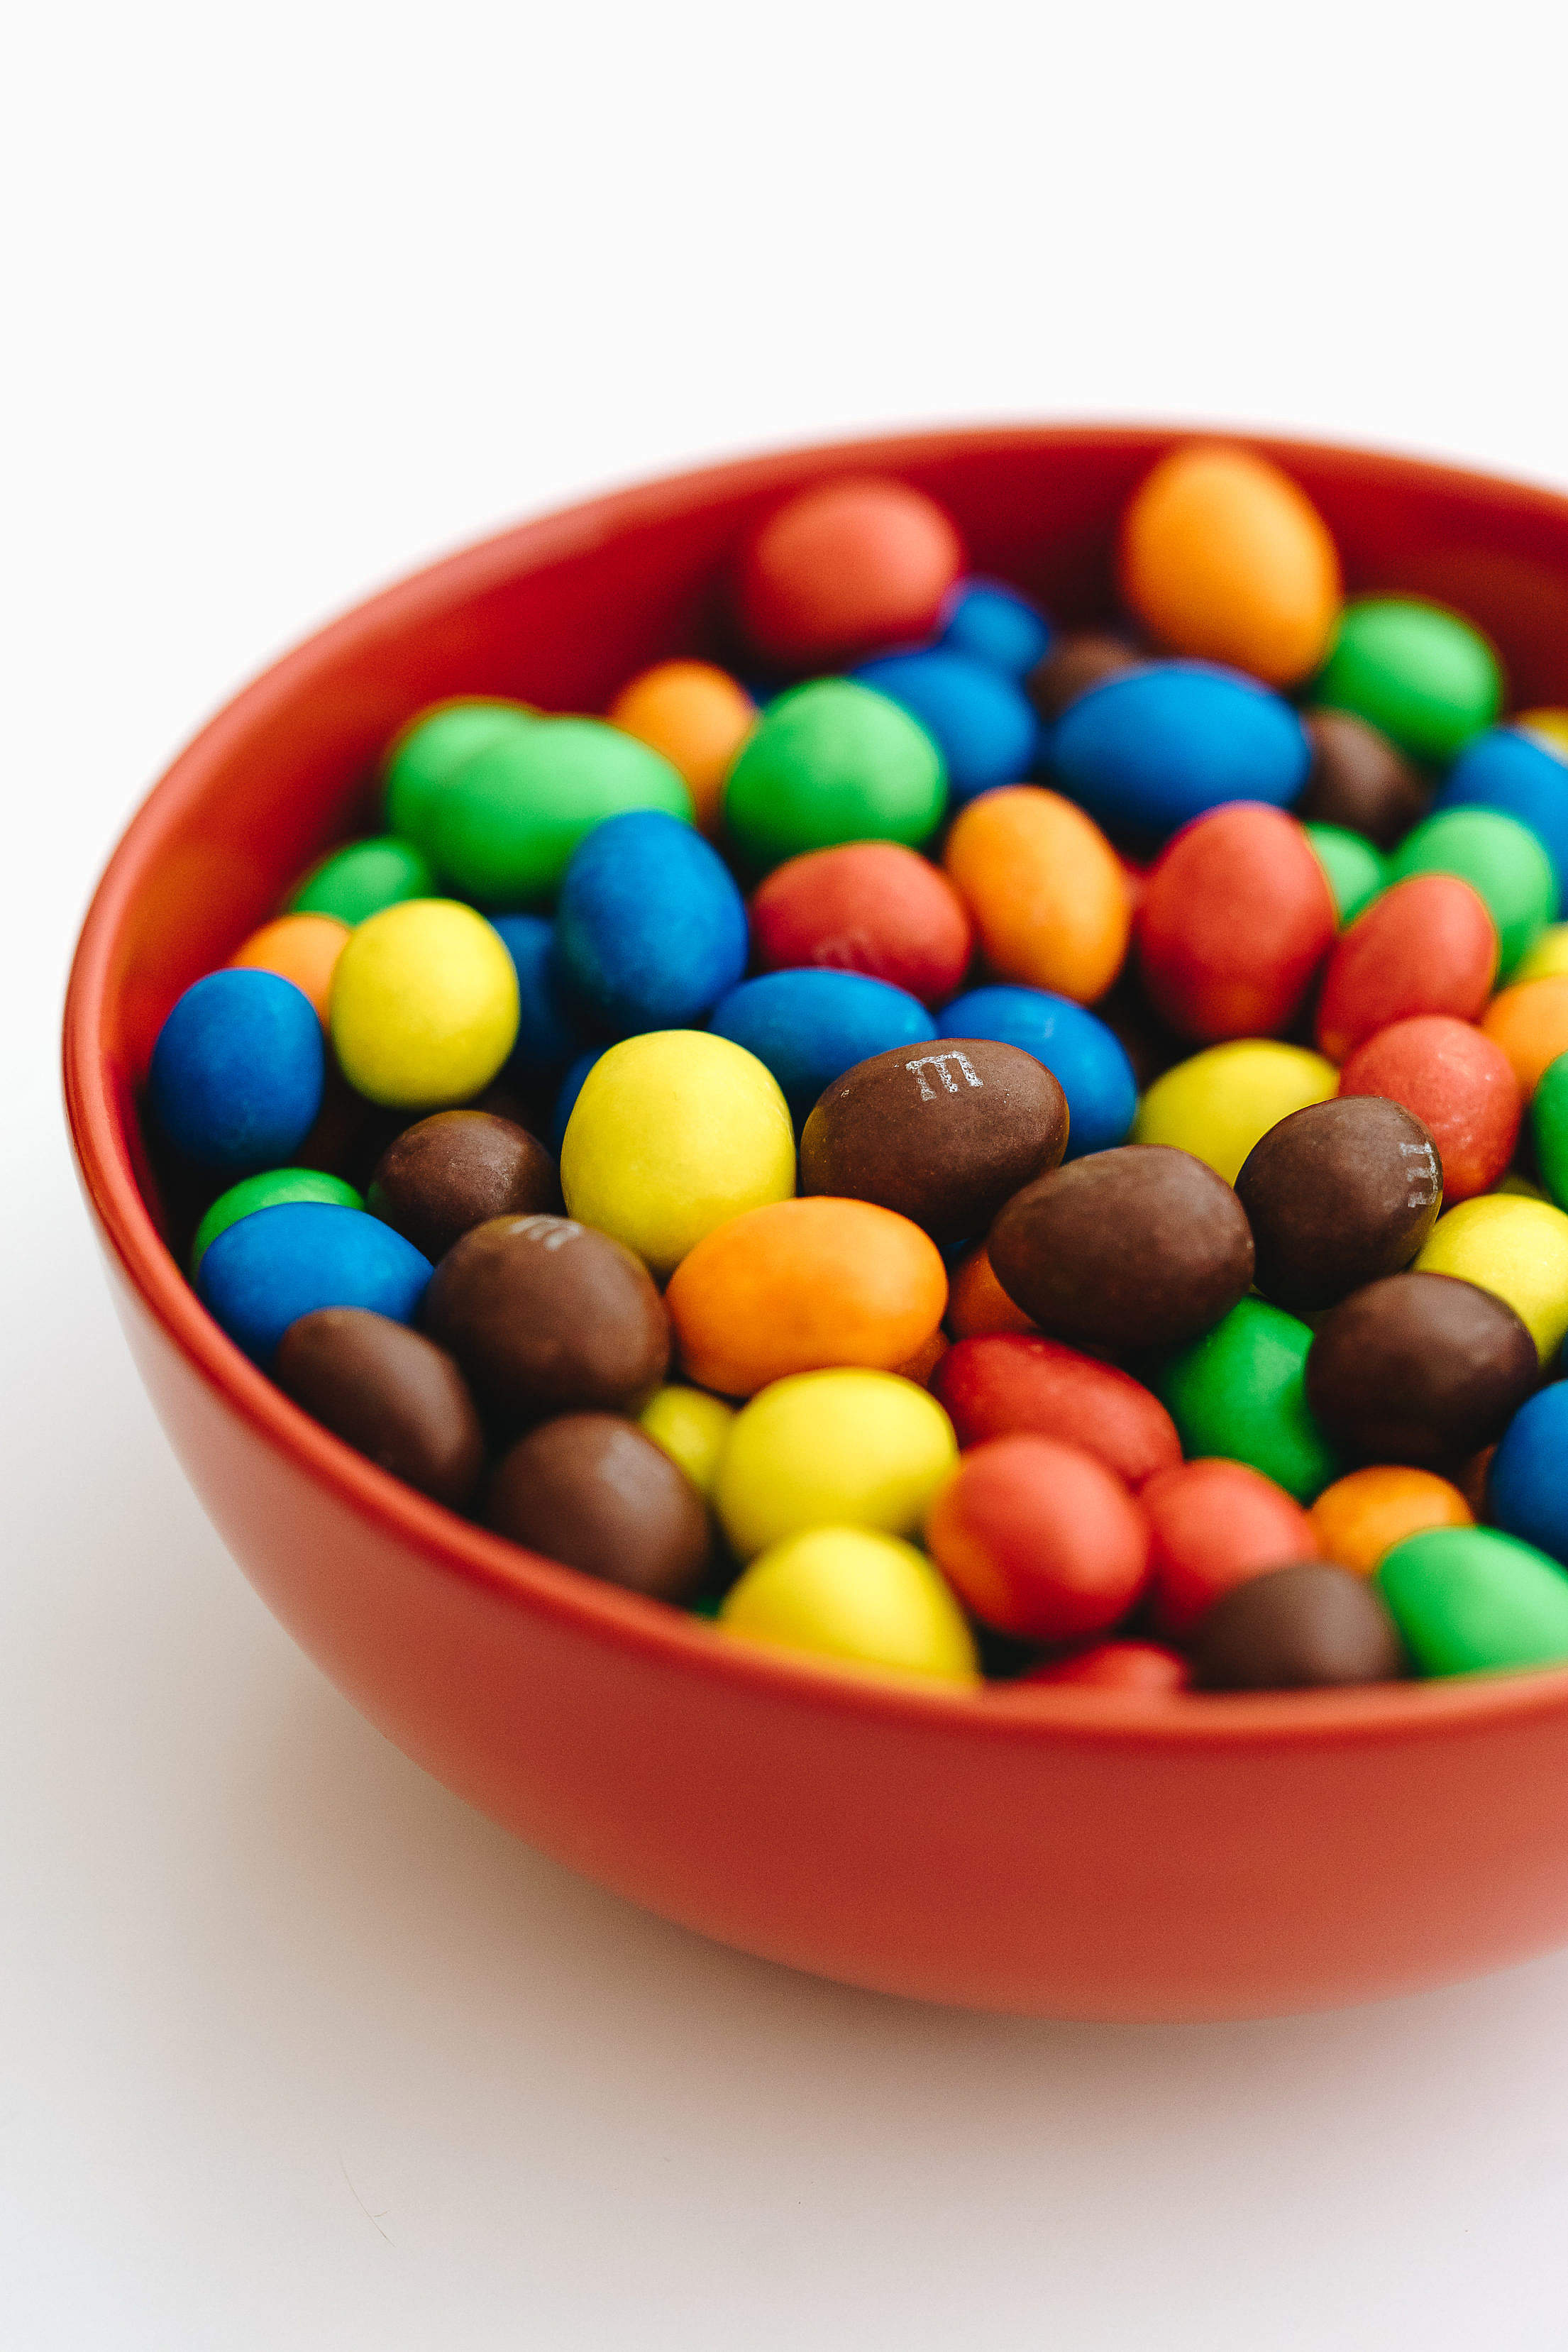 Popular M&M's Chocolate Candy Free Stock Photo